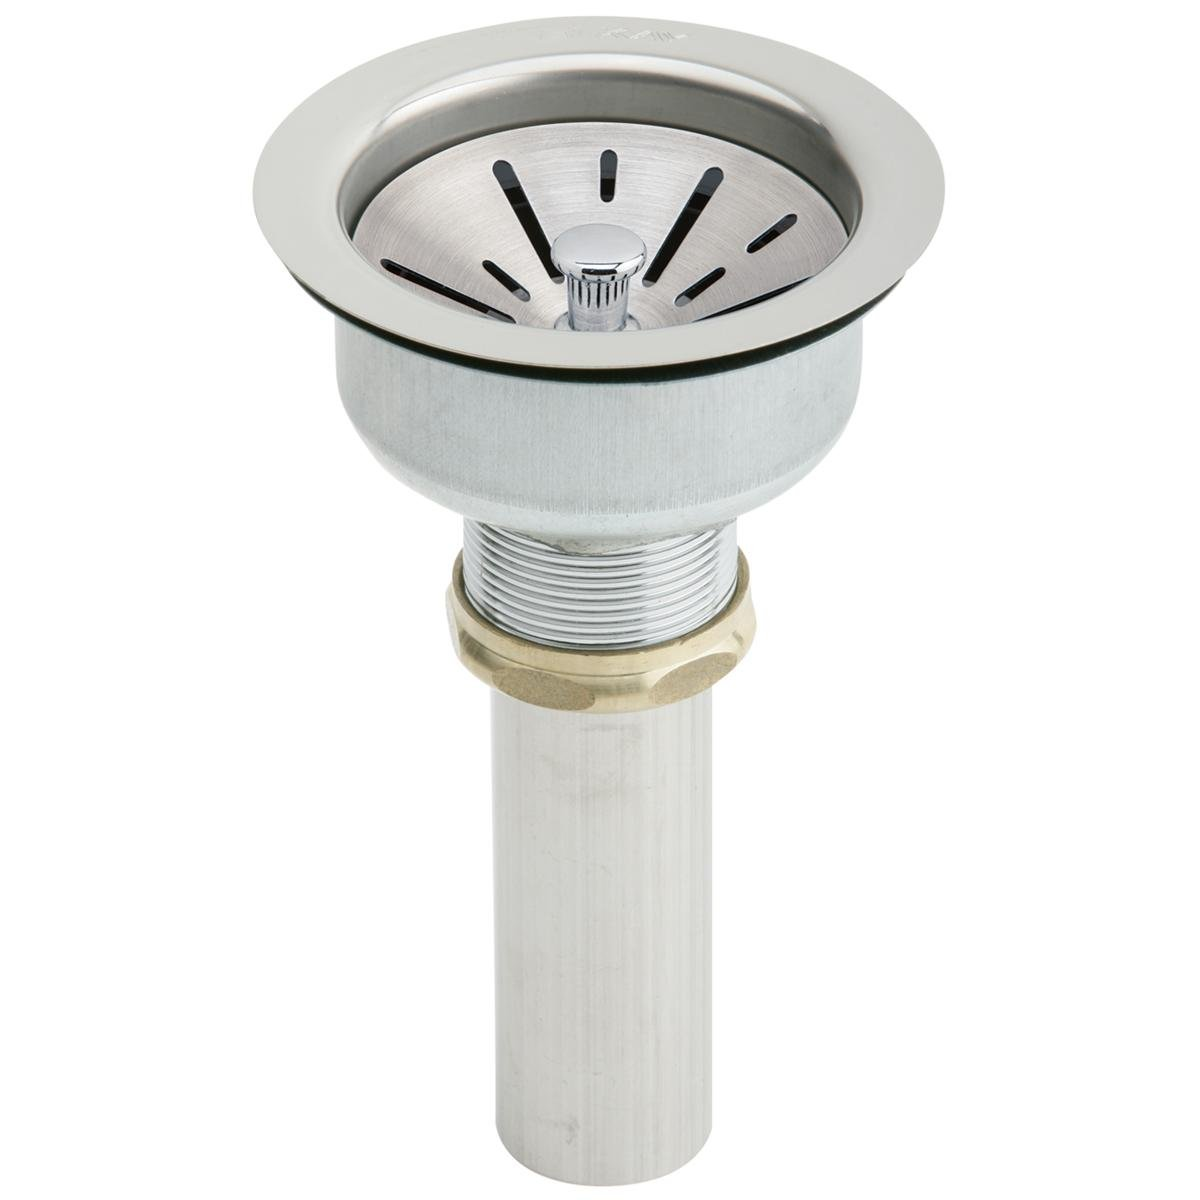 Elkay LK35B Type 304 Stainless Steel Drain with Strainer Basket, Rubber Seal, and Tailpiece